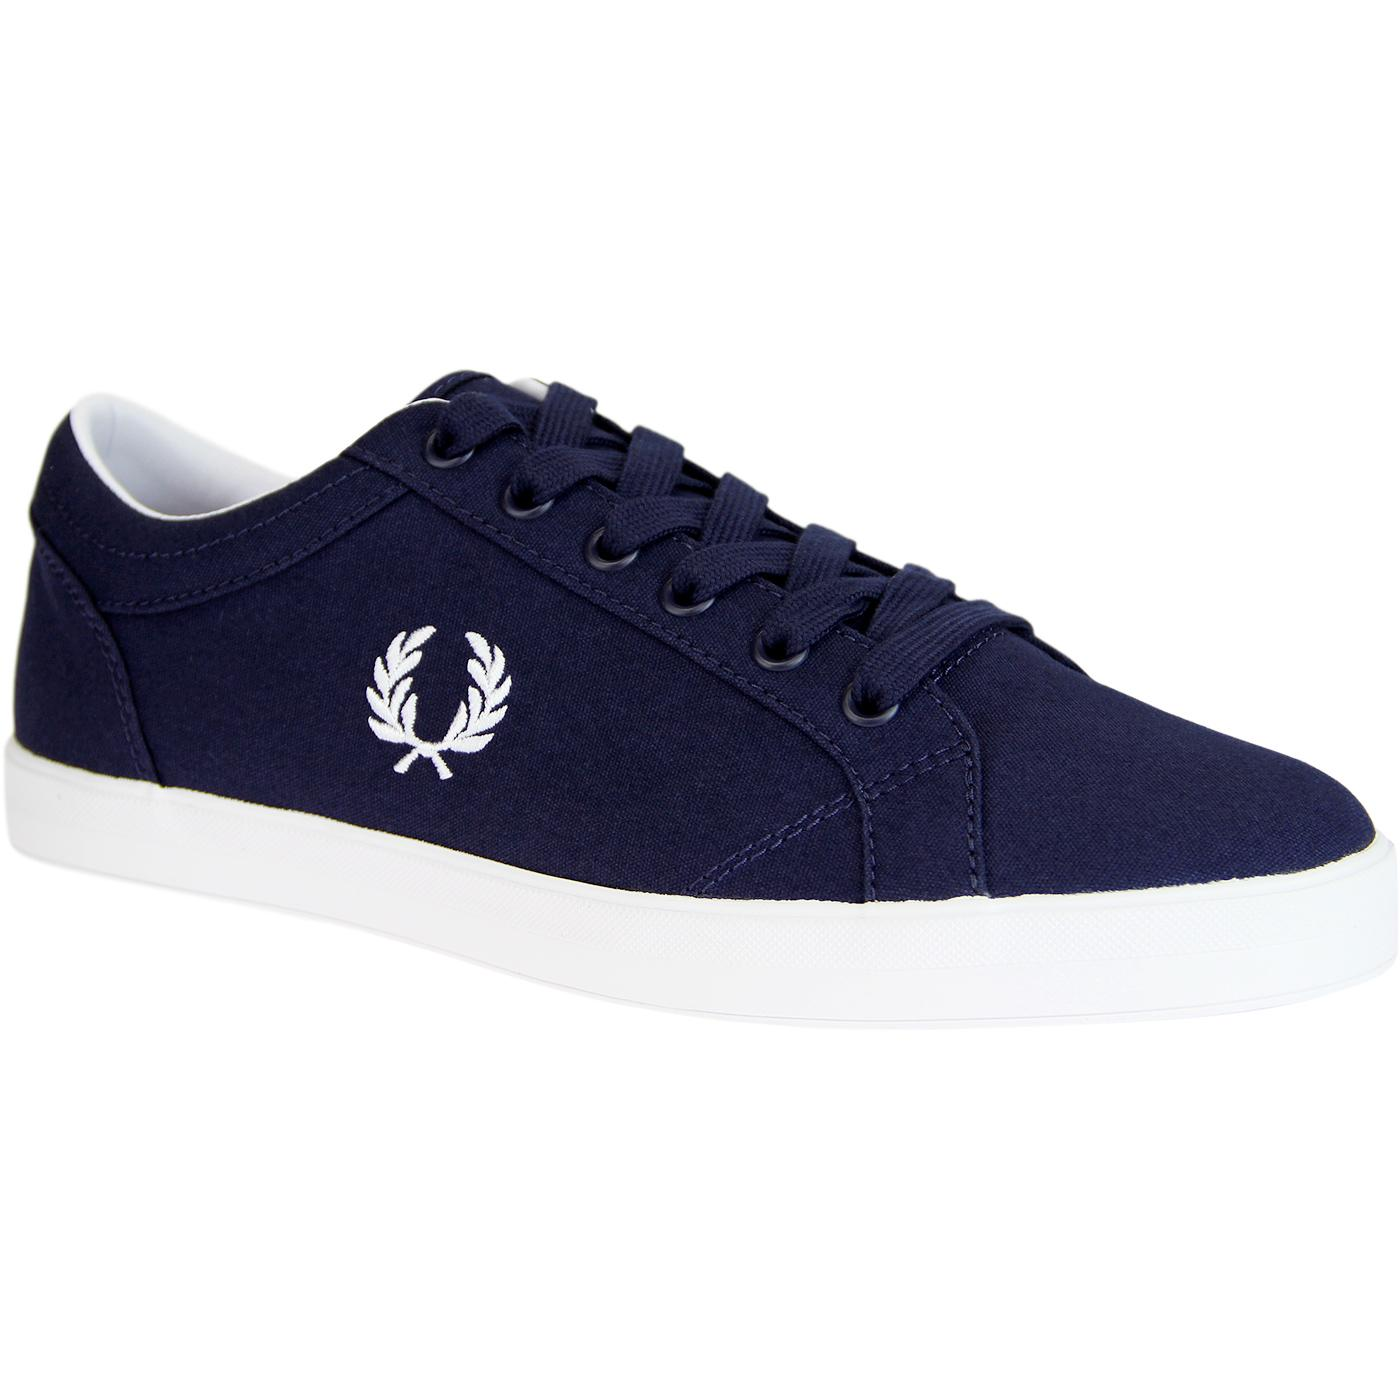 Baseline FRED PERRY Retro 70s Canvas Trainers (CB)